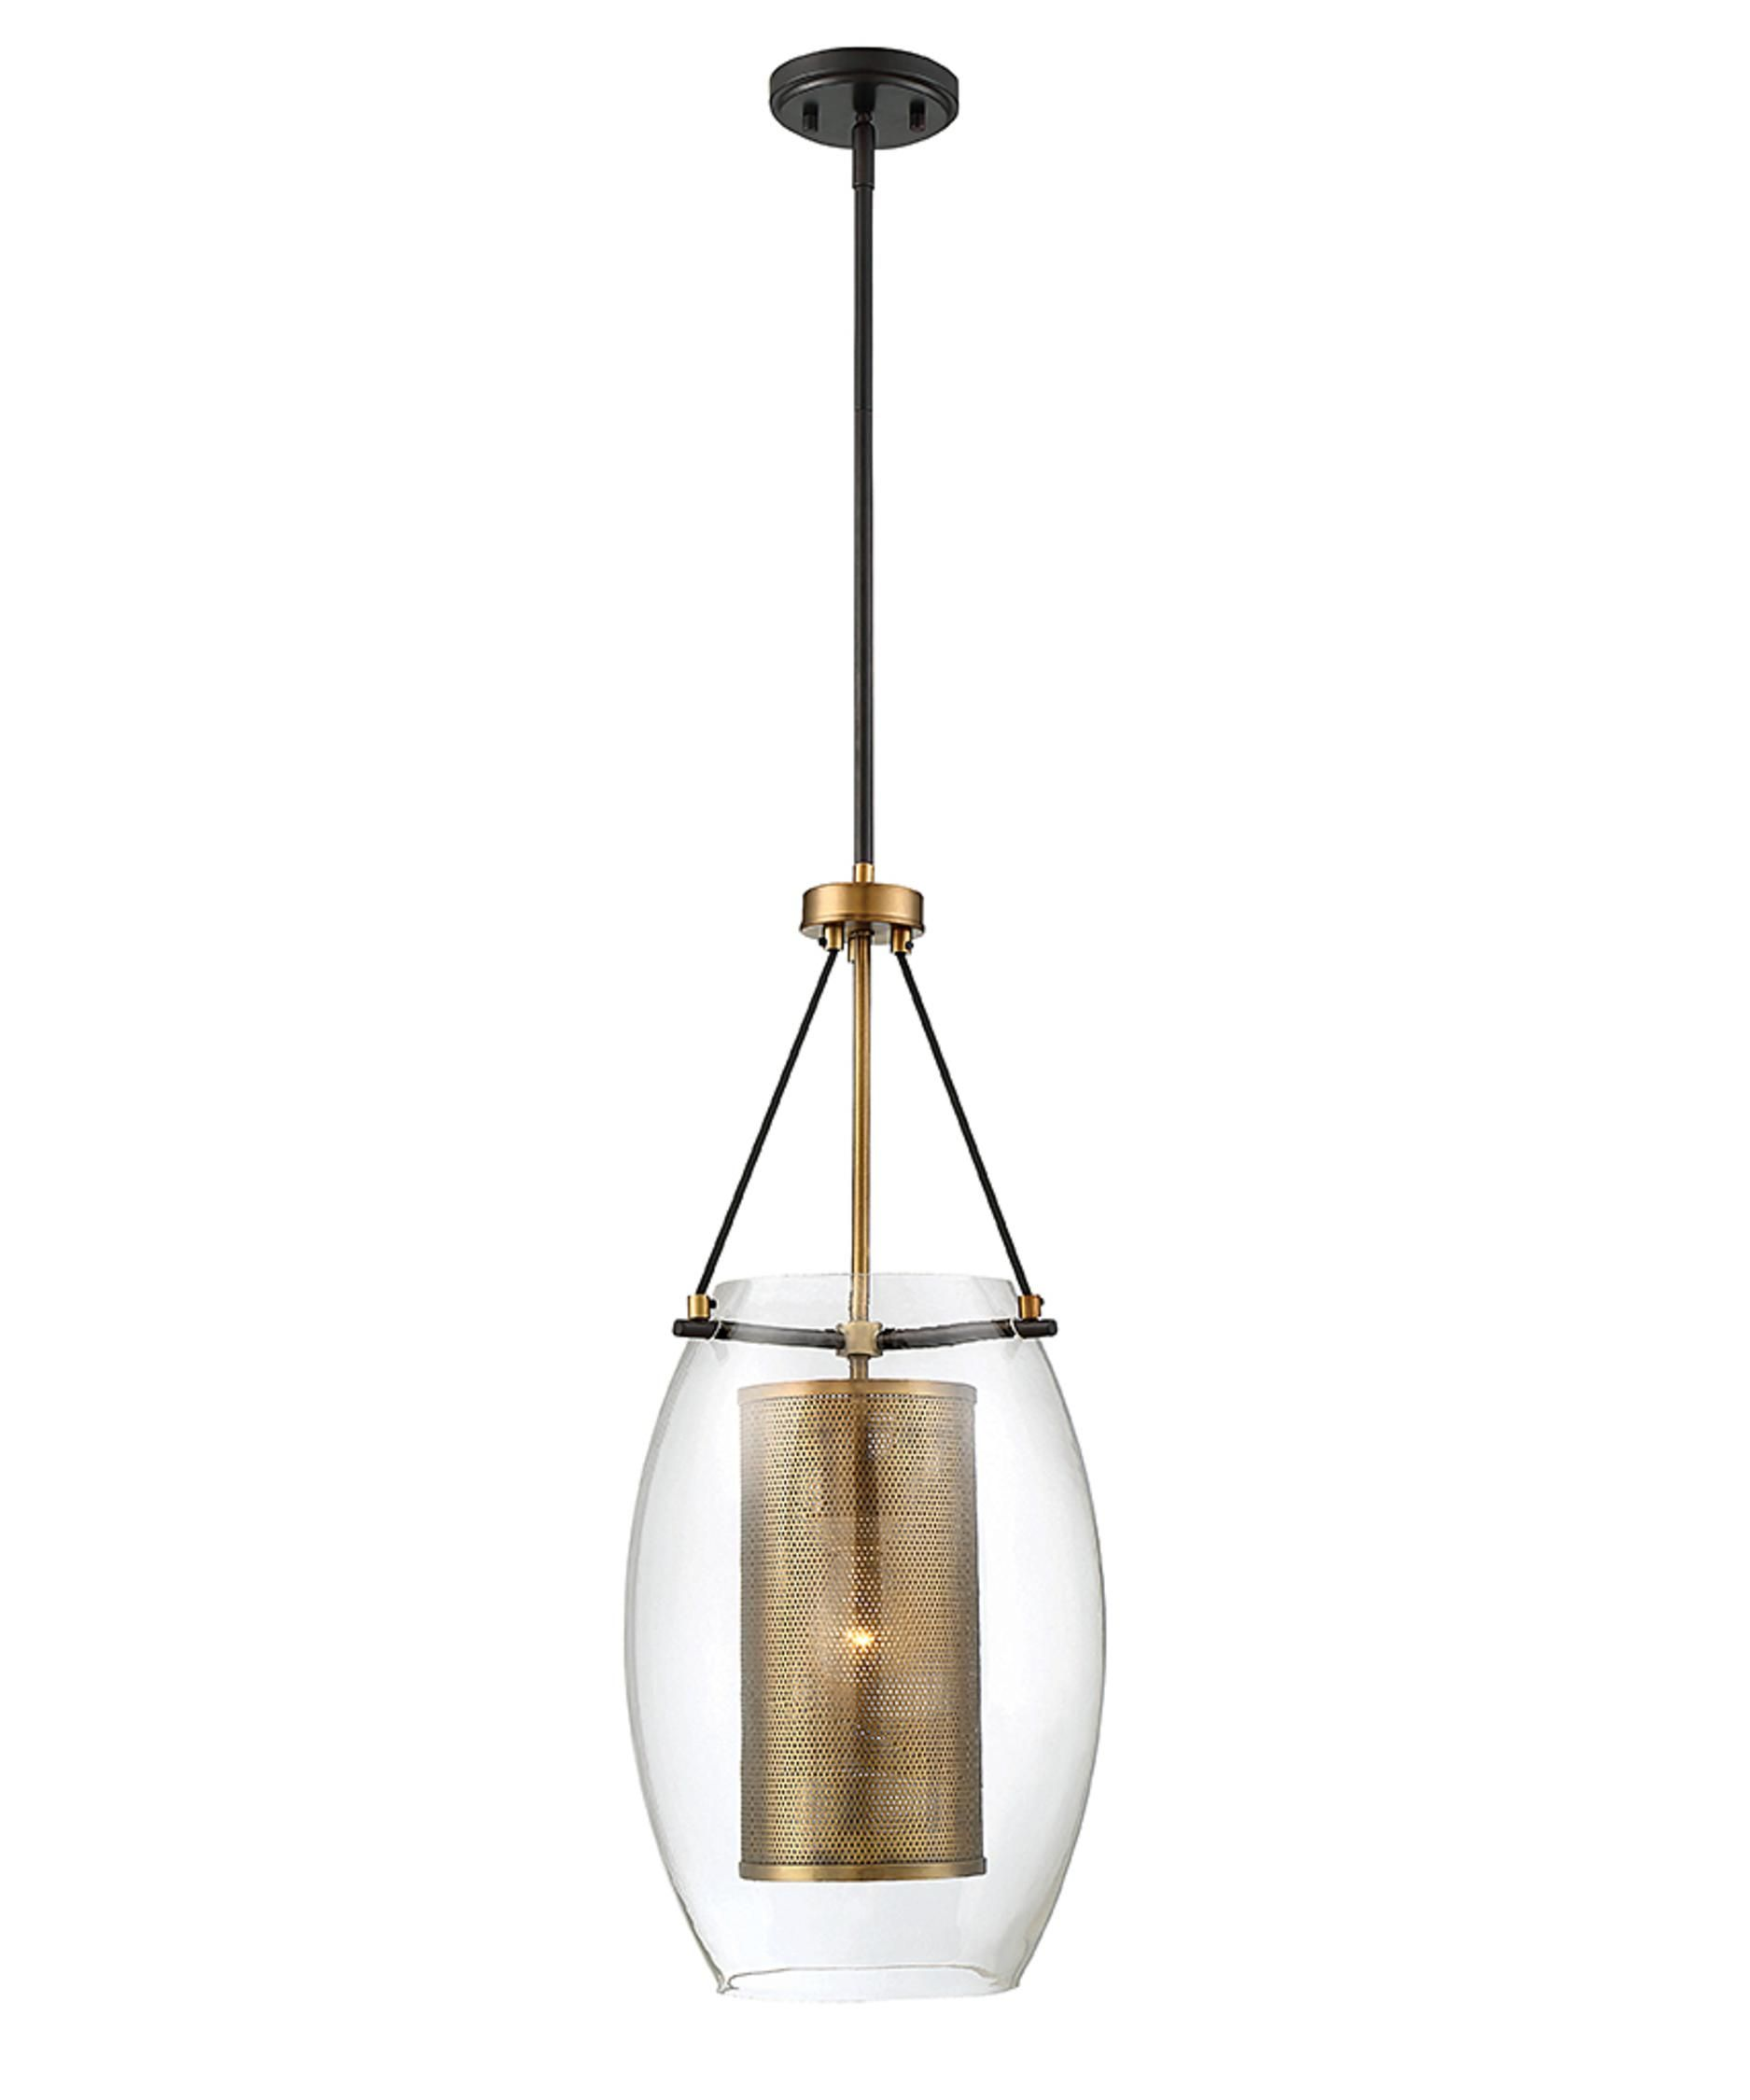 Brian Thomas Dunbar 12 Inch Mini Pendant Capitol Lighting Savoy House Lighting Modern Style Lights Contemporary Light Fixtures